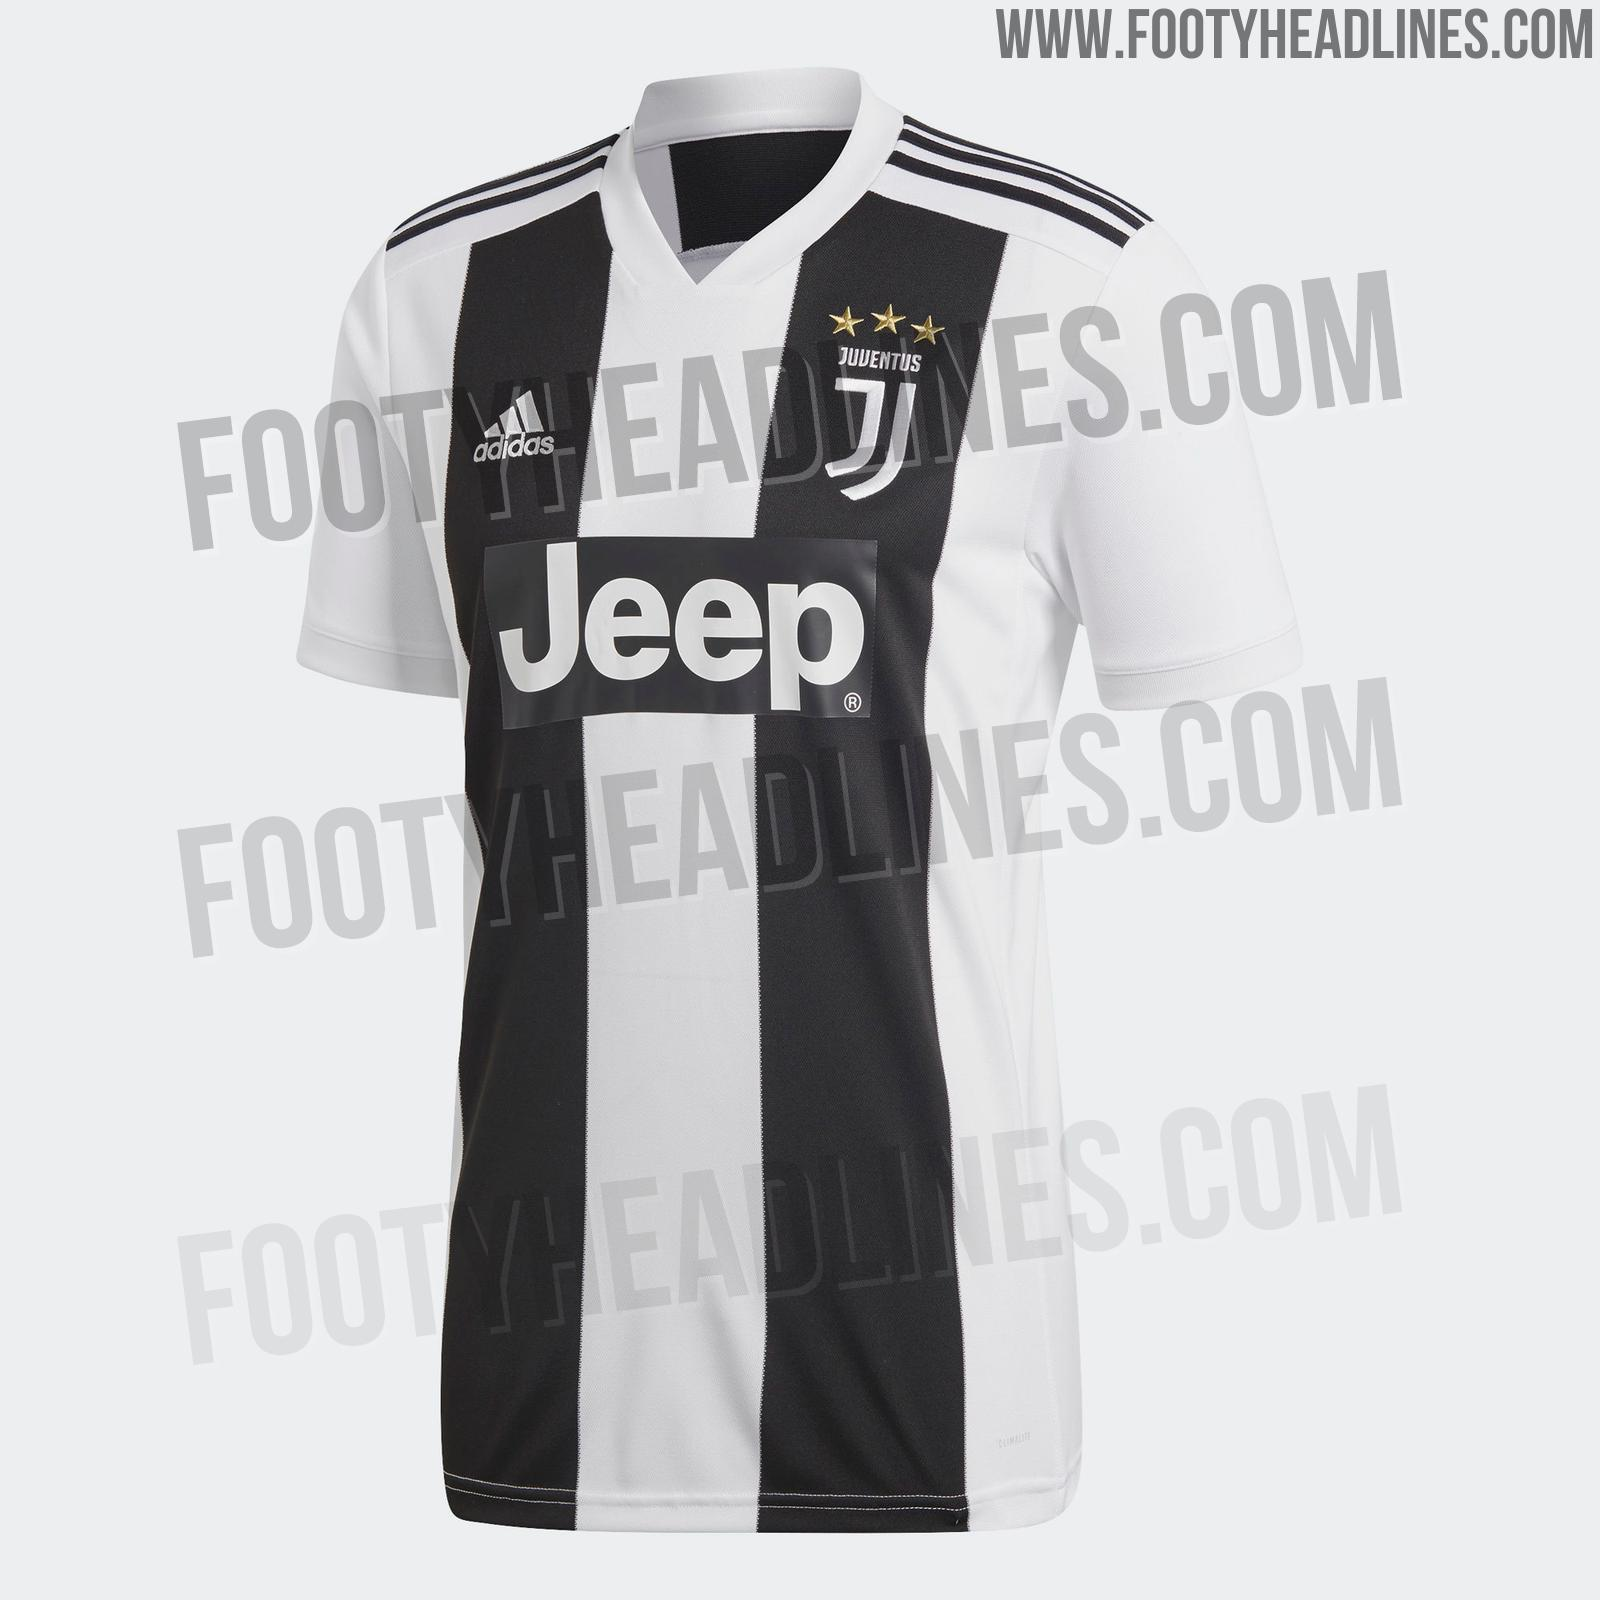 juventus-18-19-home-kit-5.jpg